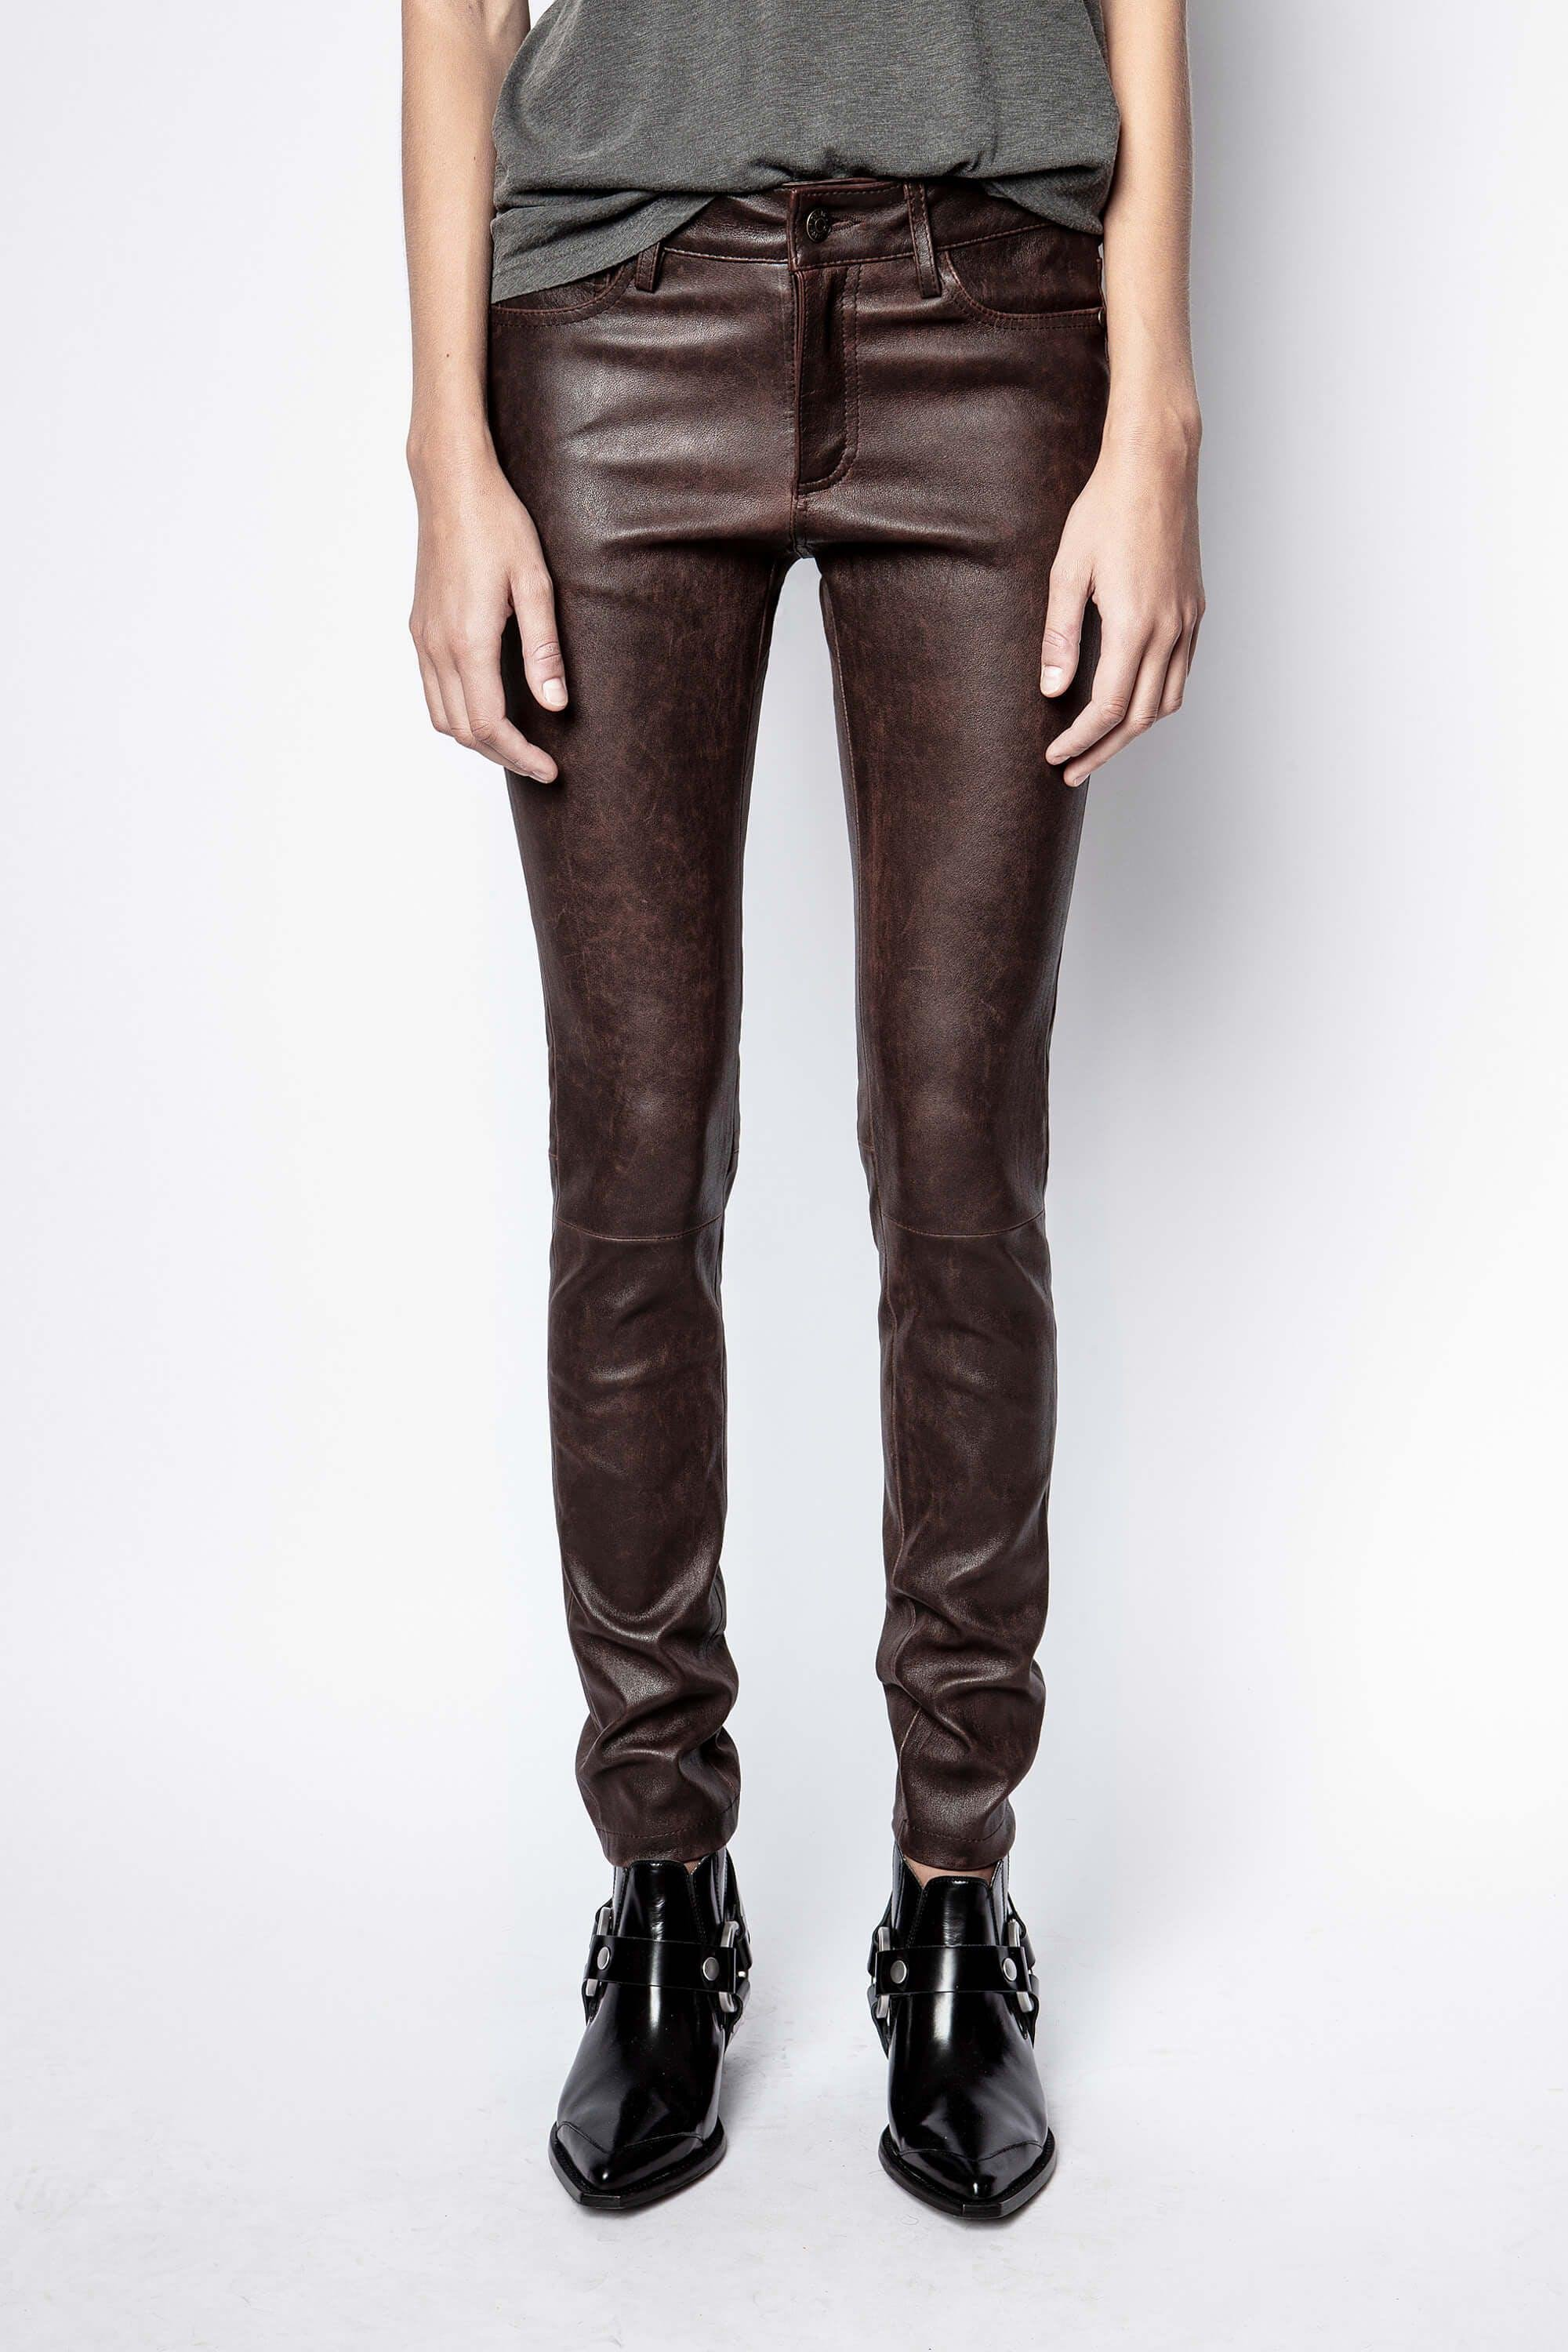 Phlame Leather Used Pants 1